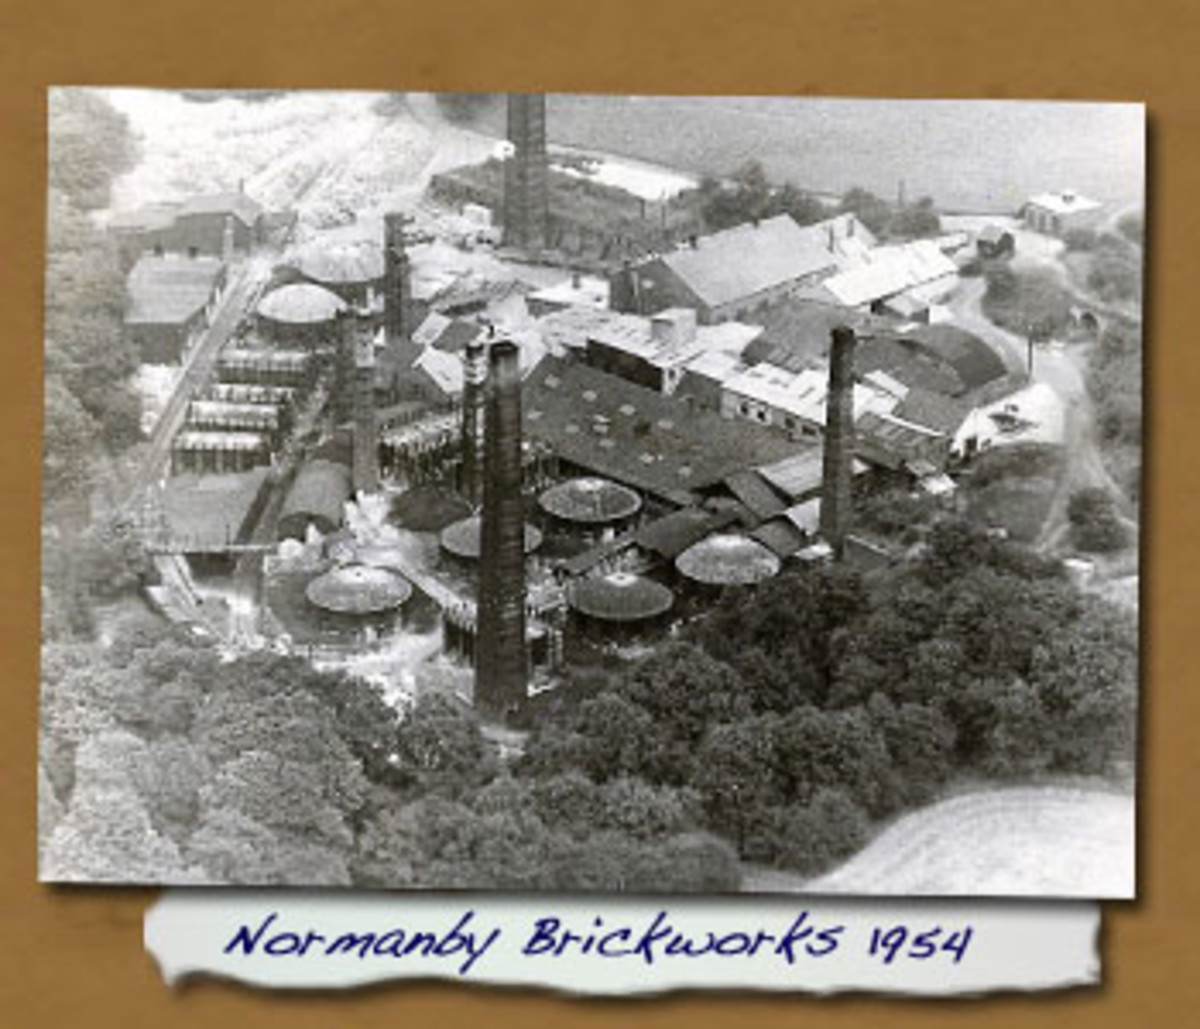 An aerial view of Normanby Brickworks beside the Cleveland Railway's branch in the mid-1950s - next door neighbours worked there until closure in the mid-1960s